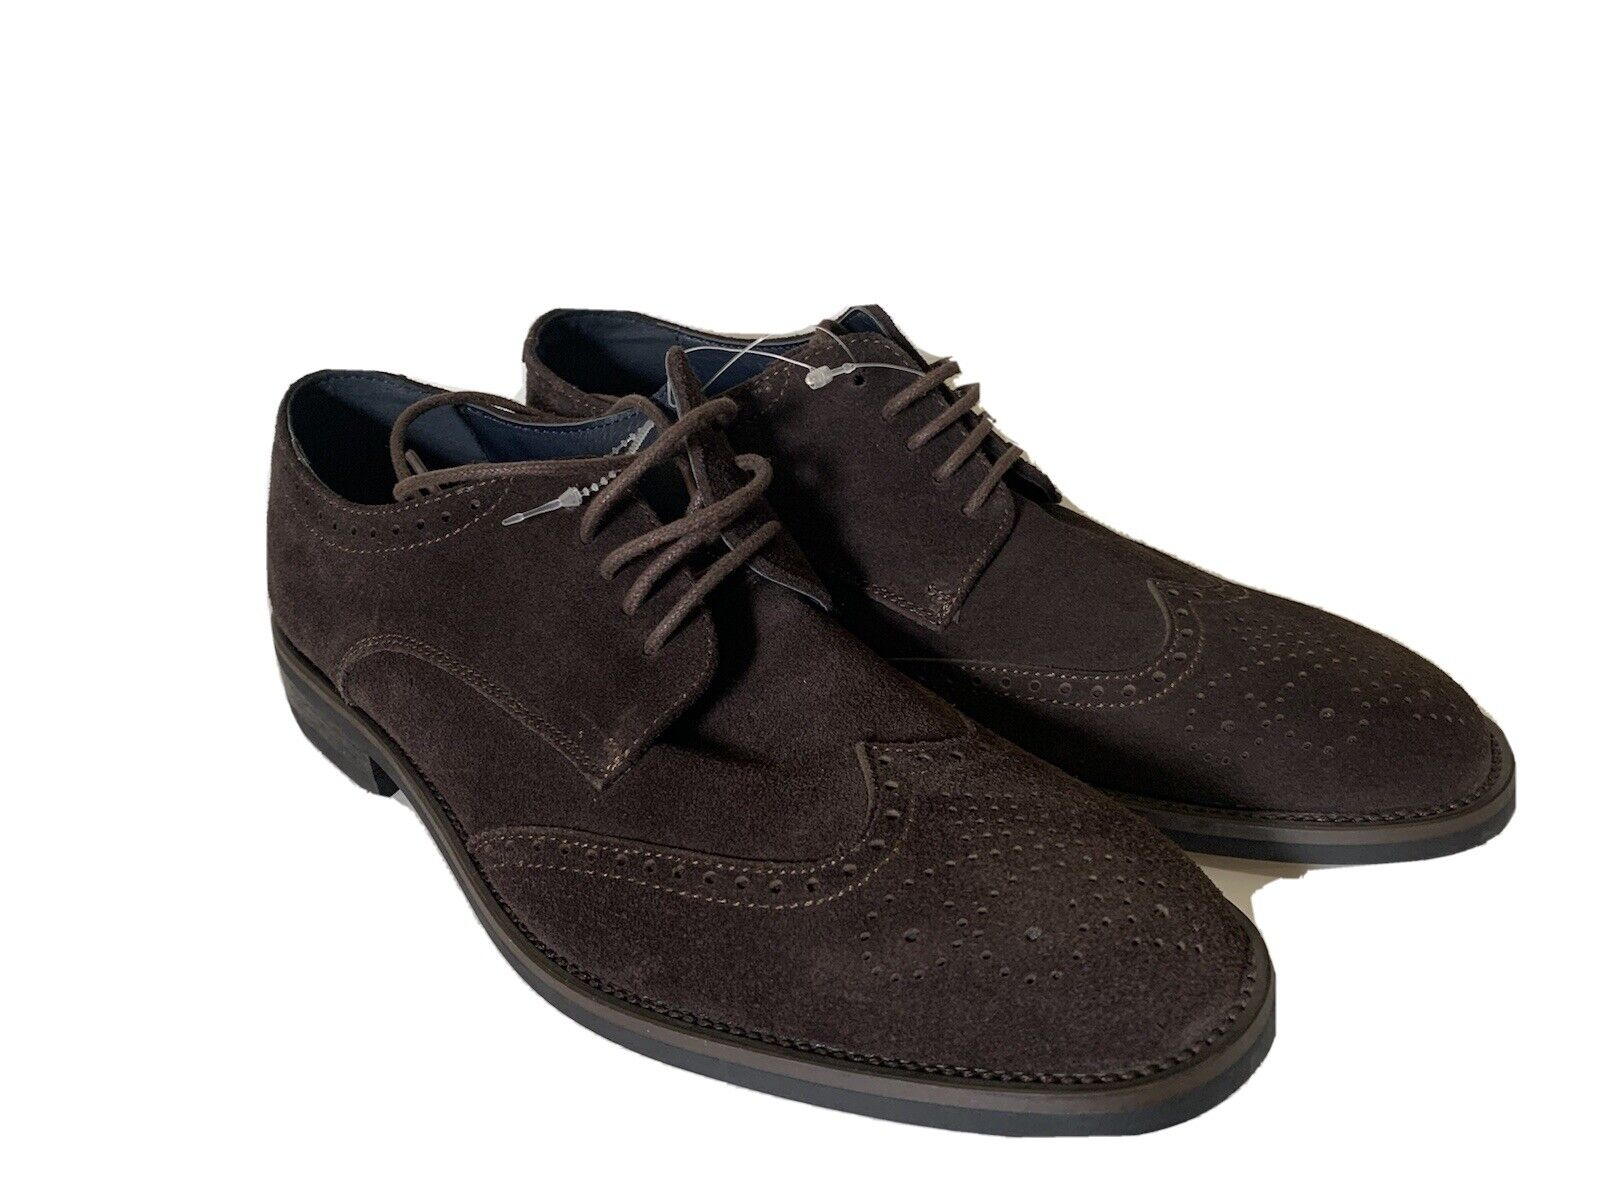 New Joseph Abboud Leather Oxford Brown Shoes Sz 8